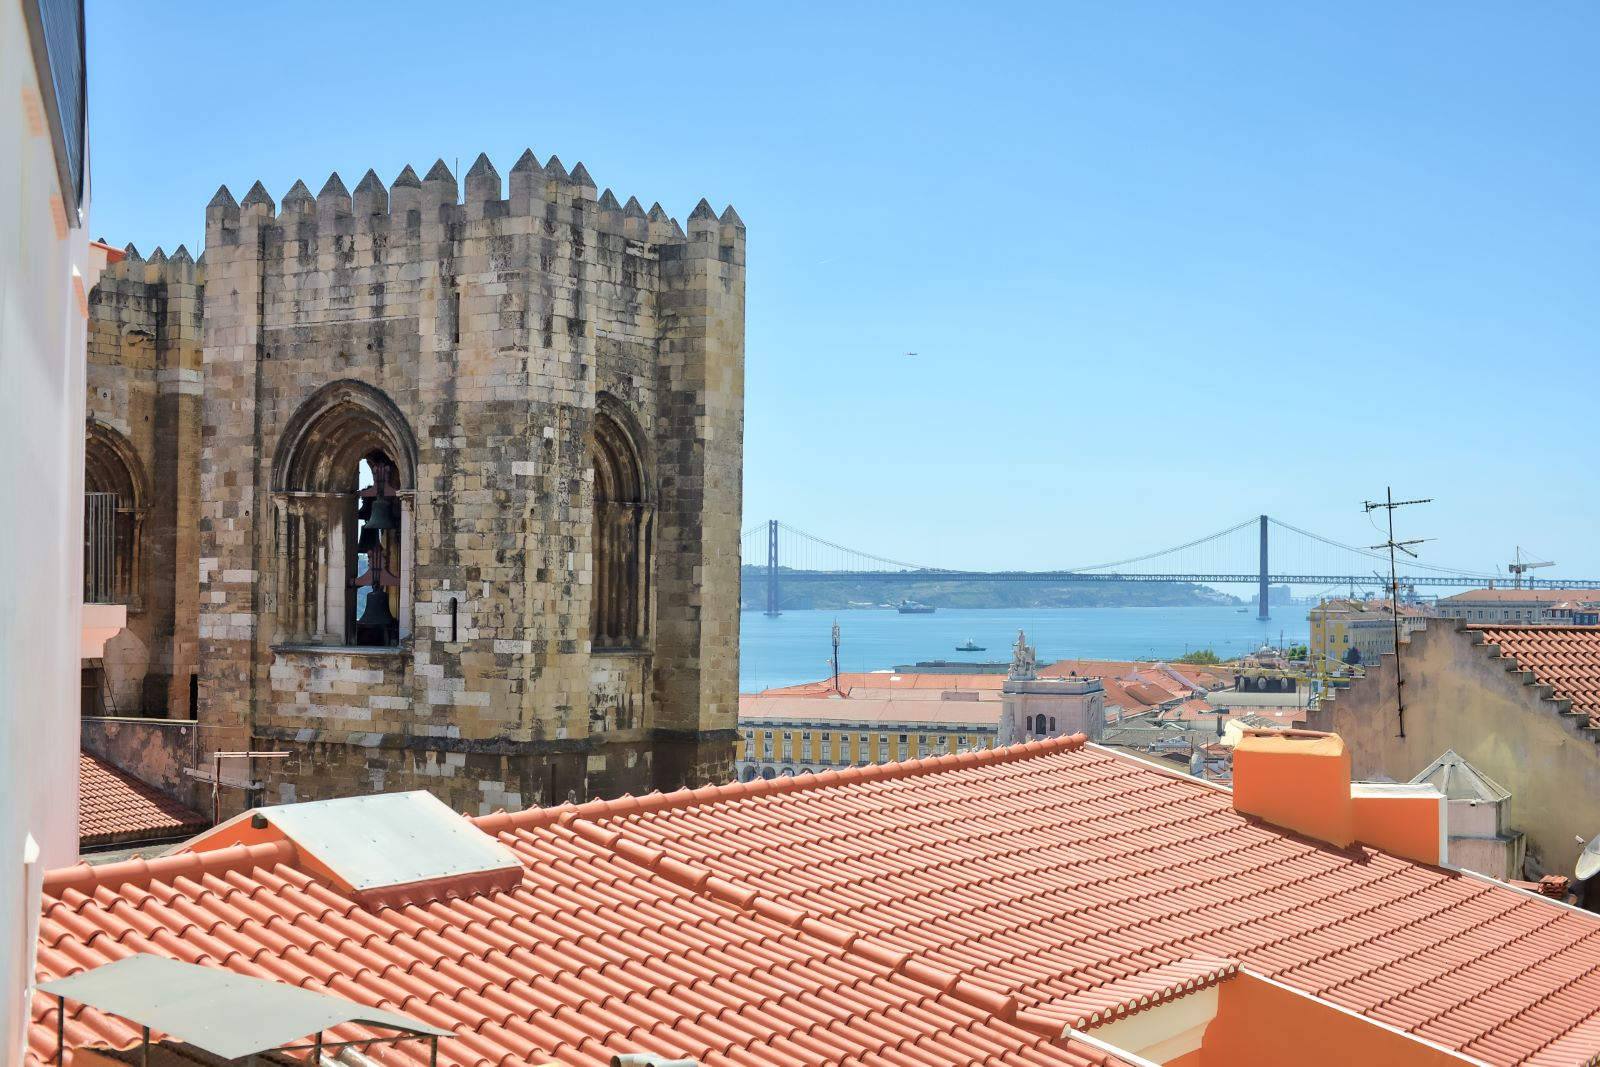 2-BEDROOM APARTMENT WITH RIVER VIEW IN LISBON HISTORIC CENTRE